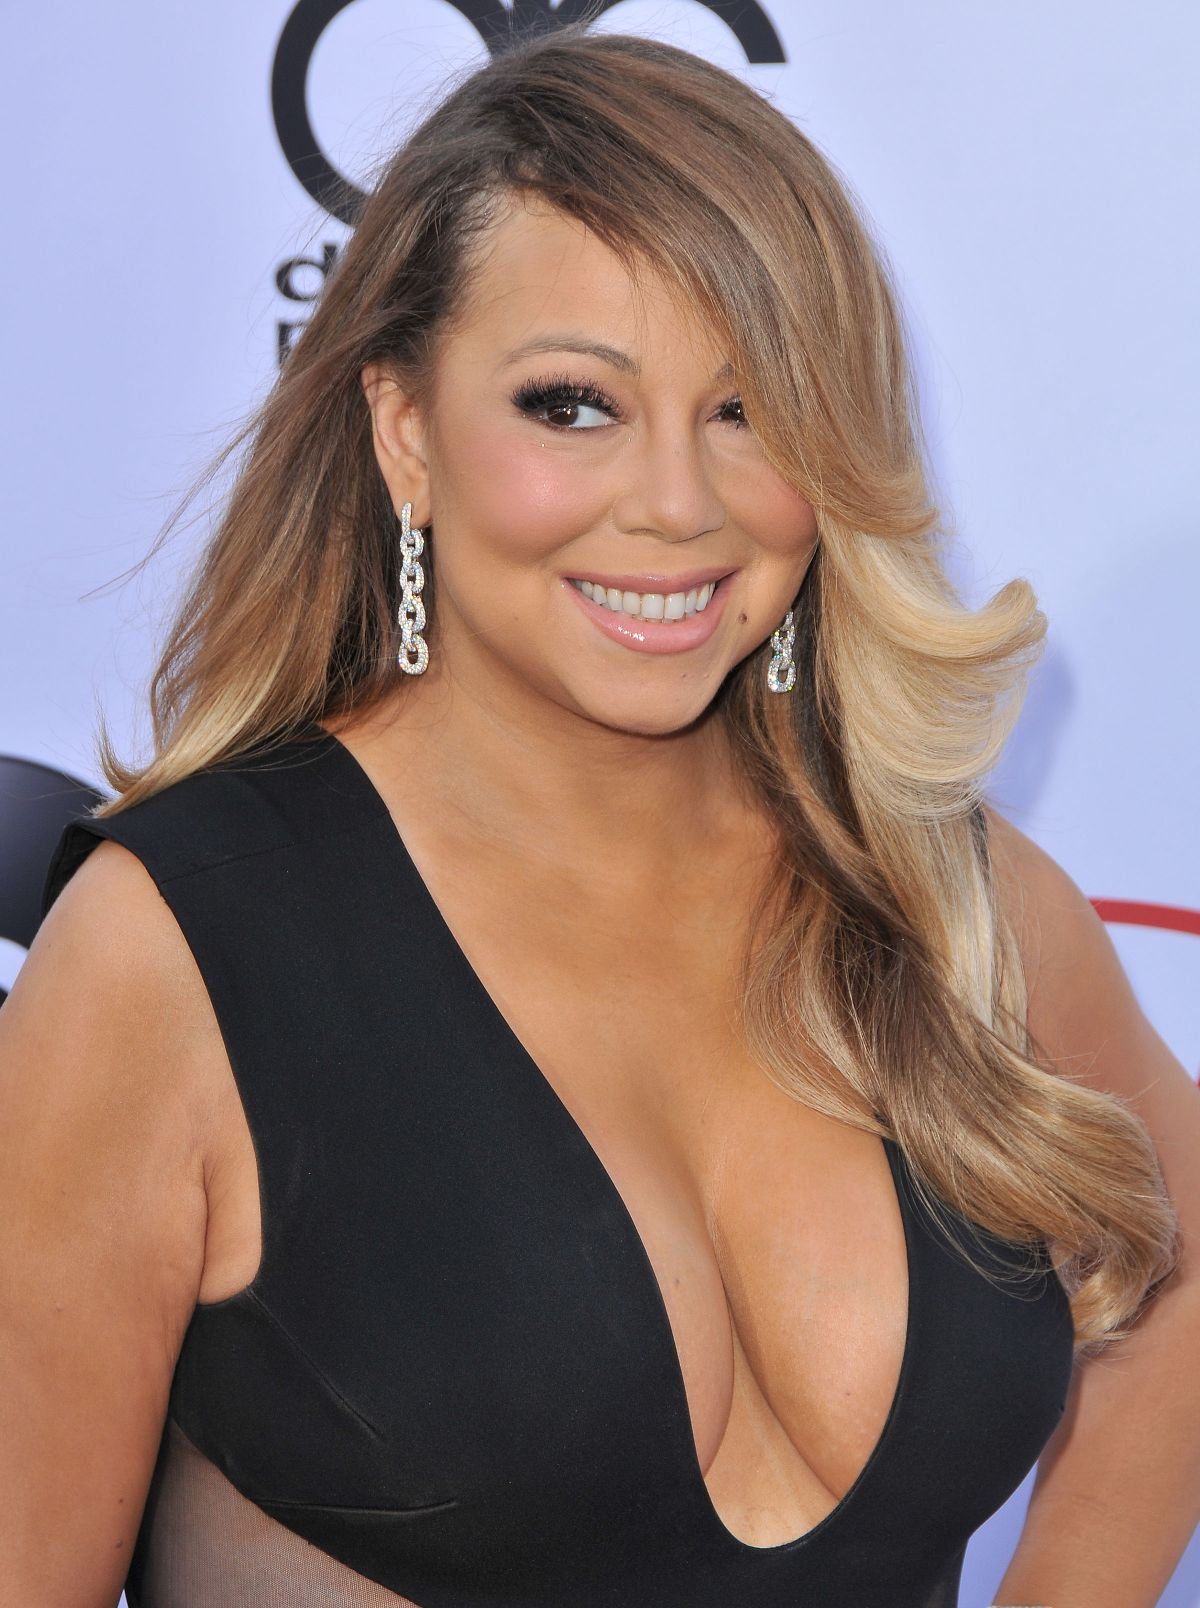 mariah-carey-at-2015-billboard-music-awards_1